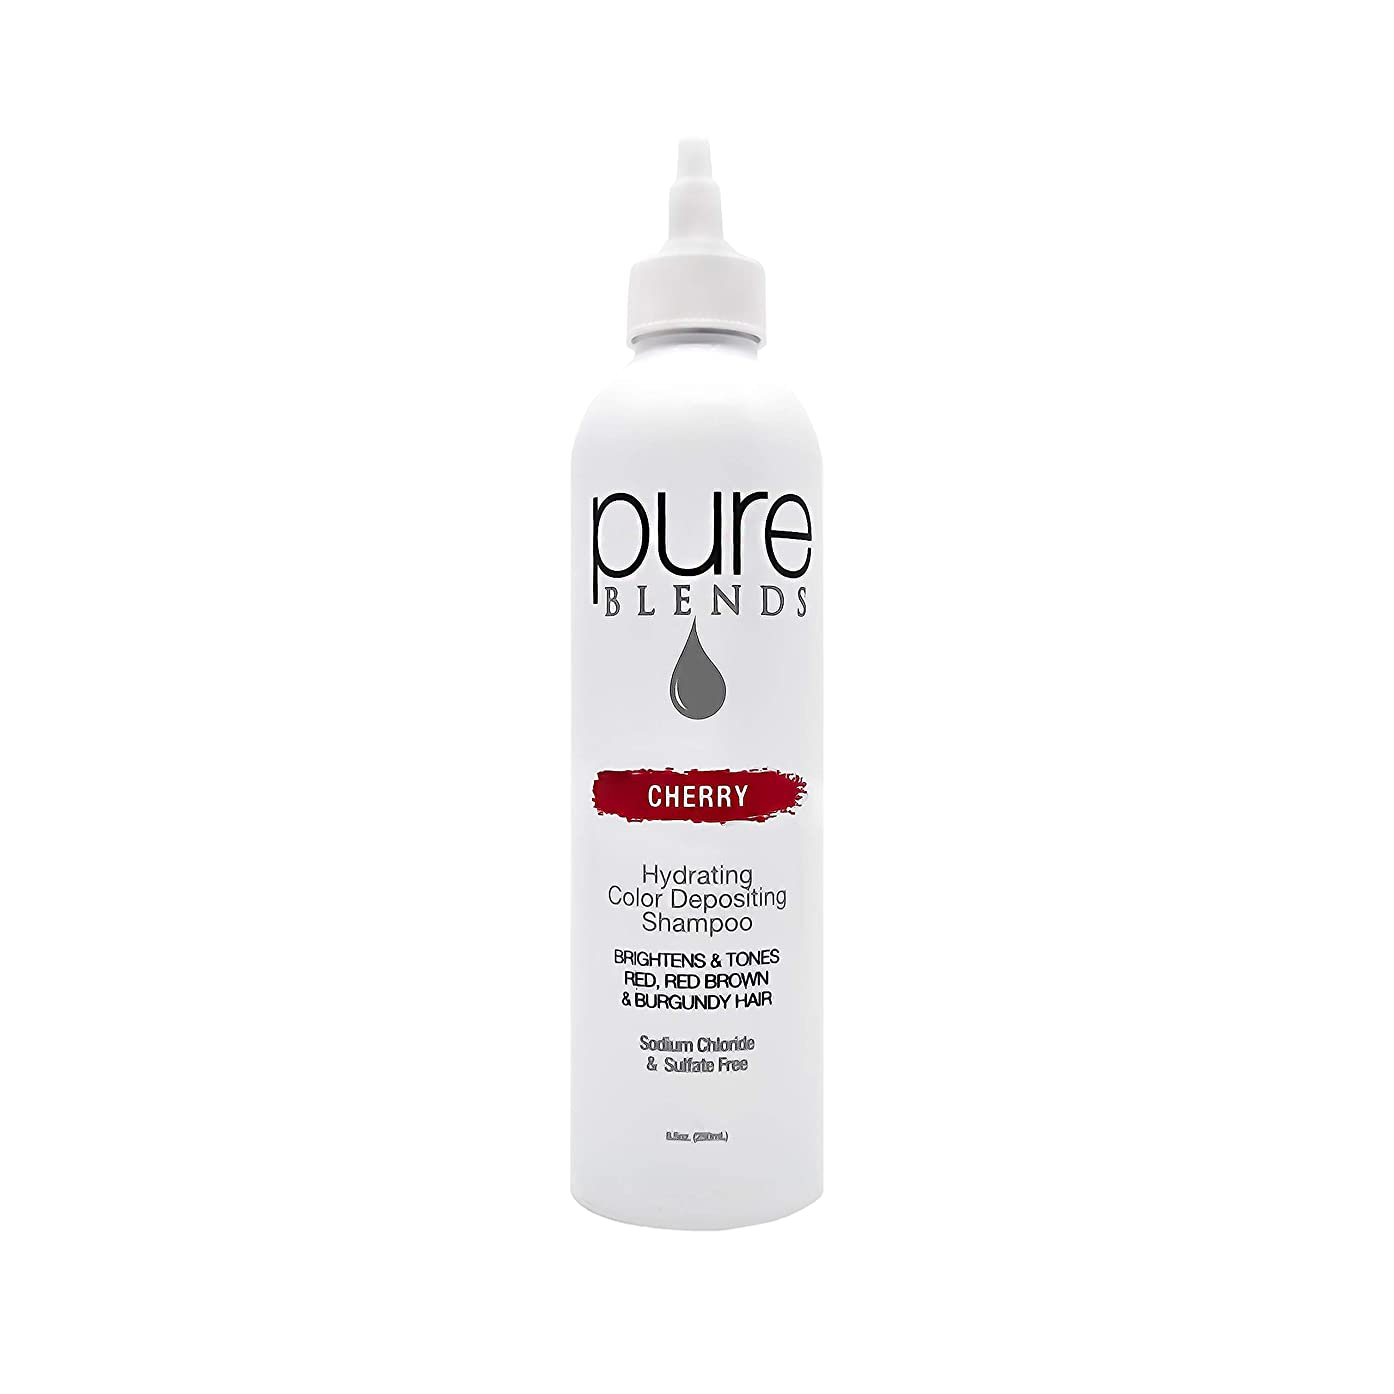 Pure Blends Hydrating Color Depositing Shampoo, 8.5 oz, Cherry (Red, Red-Brown, Burgundy Tones)